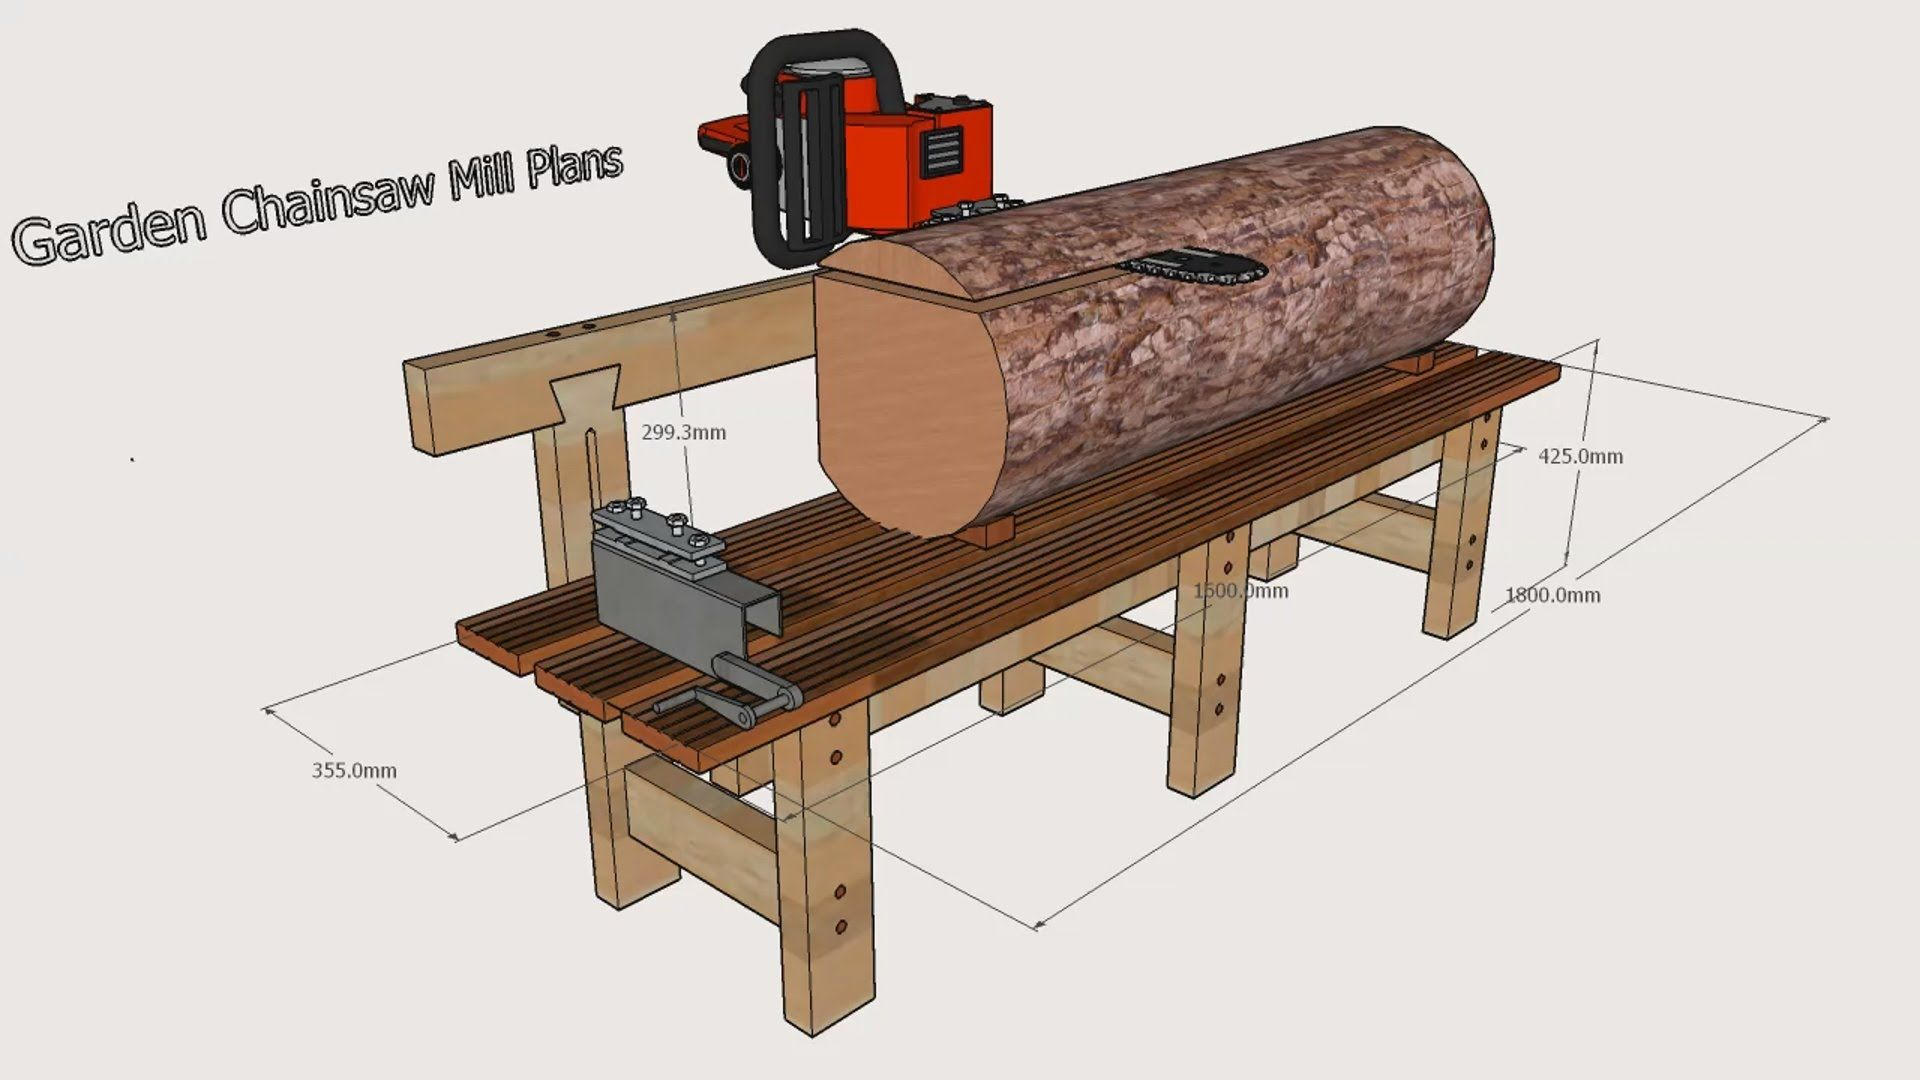 Garden Chainsaw Mill Plans Tools For Wood Бензопилы